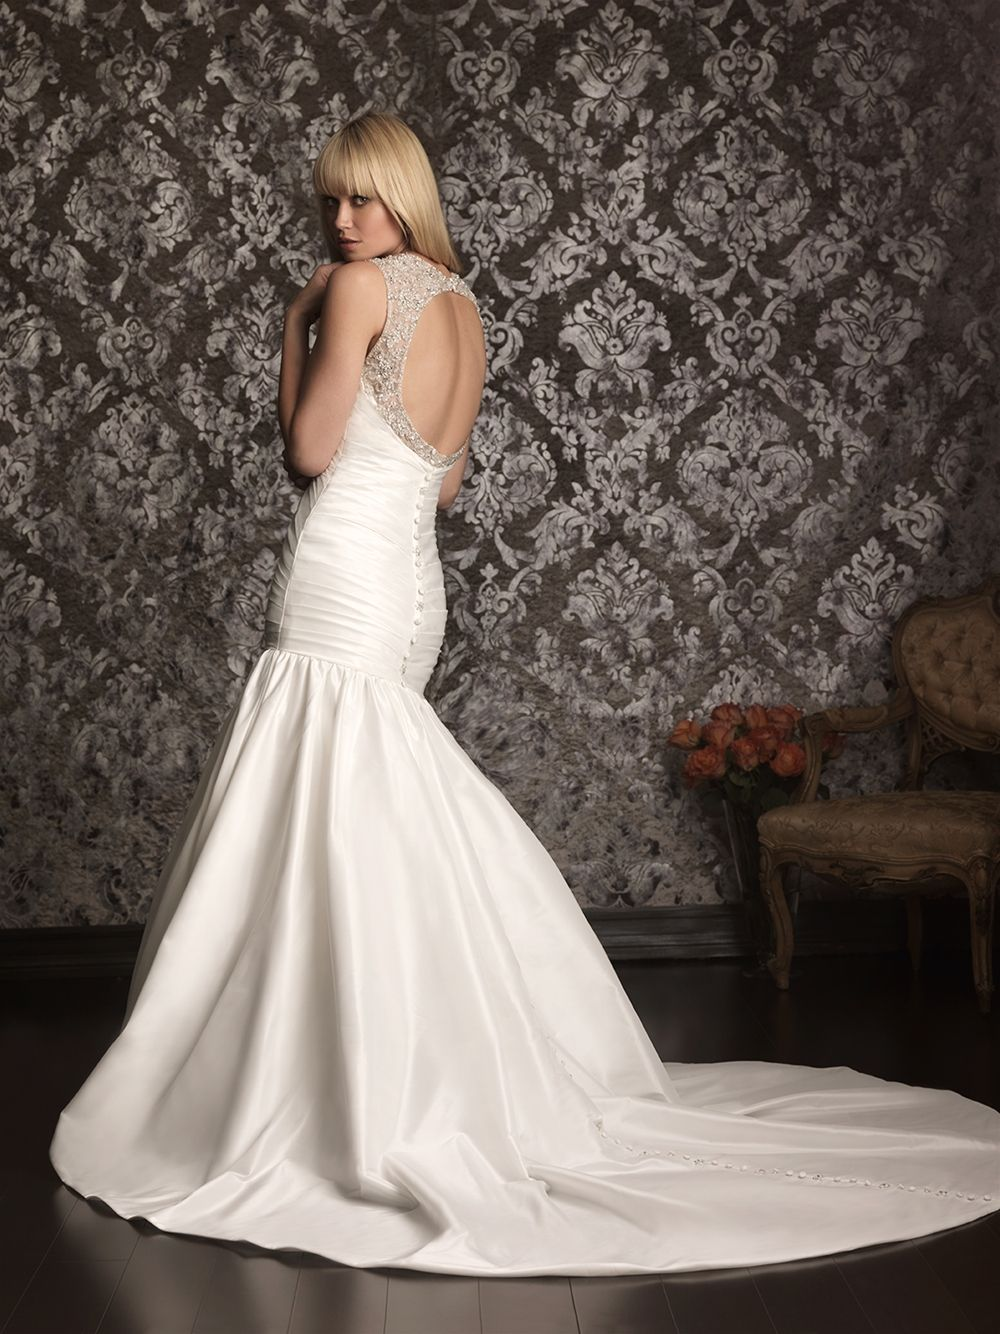 Allure Bridals » Style: 9020 » http://www.allurebridals.com/products/9020